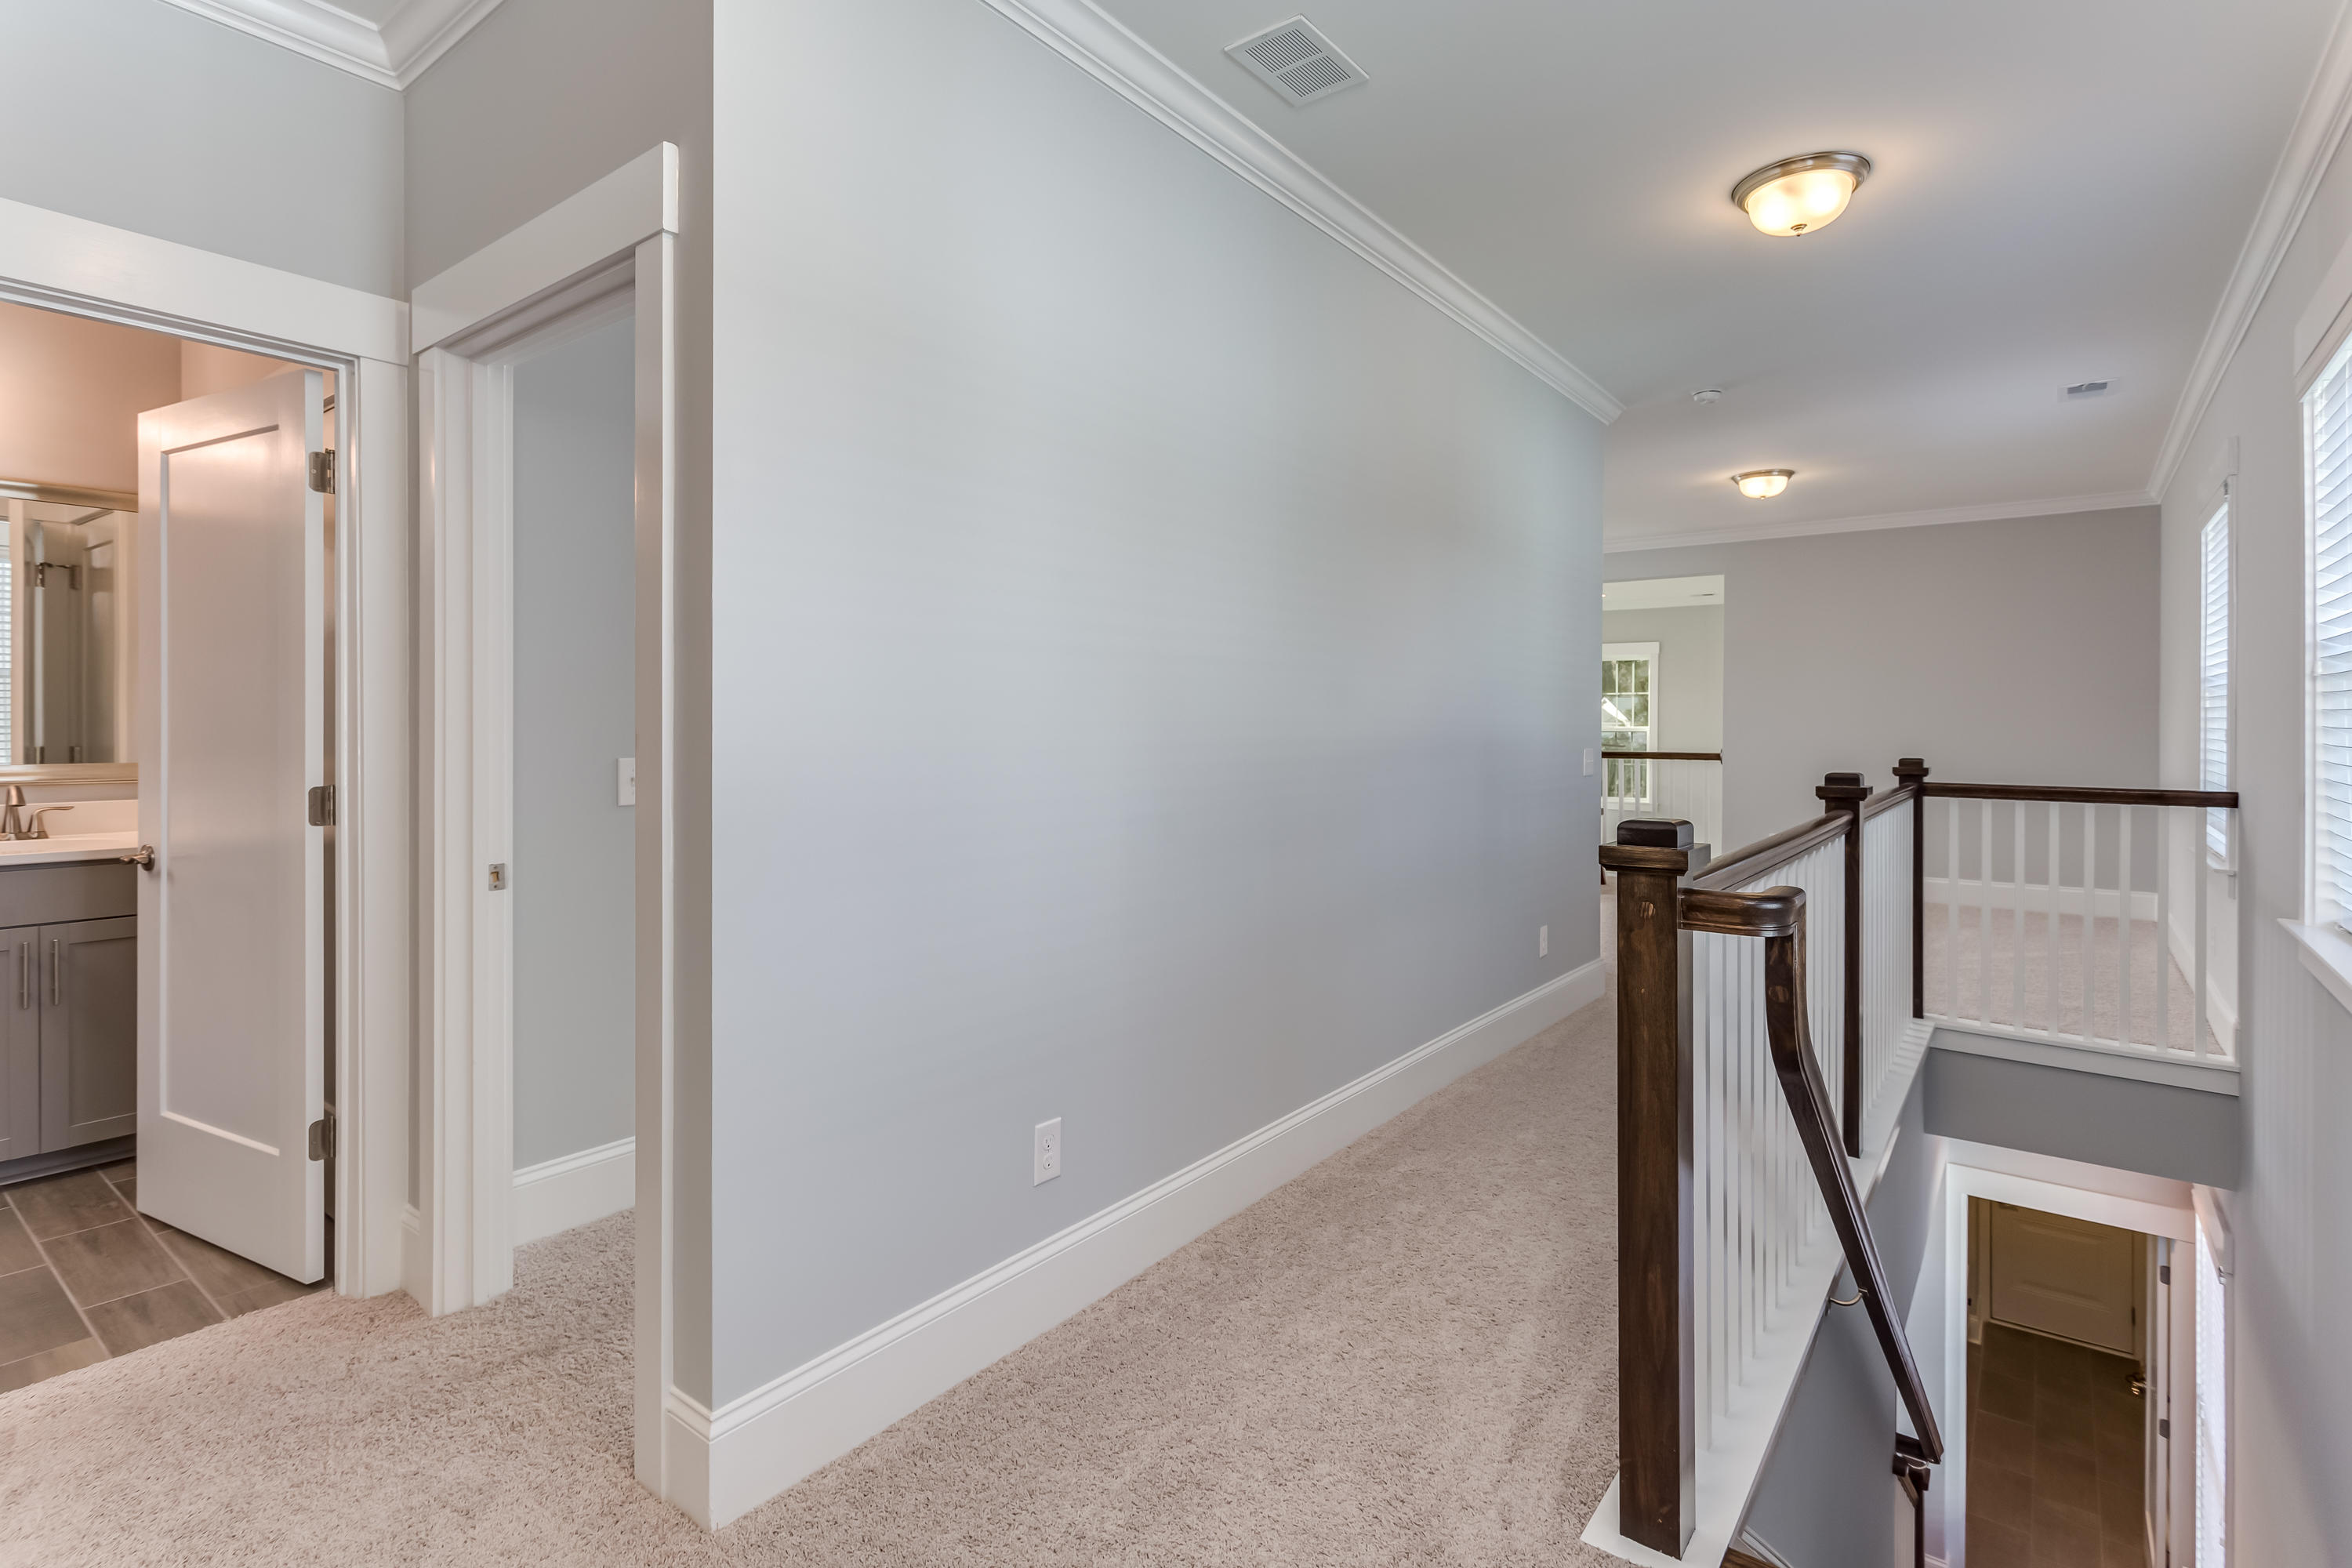 The Village at Stiles Point Homes For Sale - 849 Shutes Folly, Charleston, SC - 23